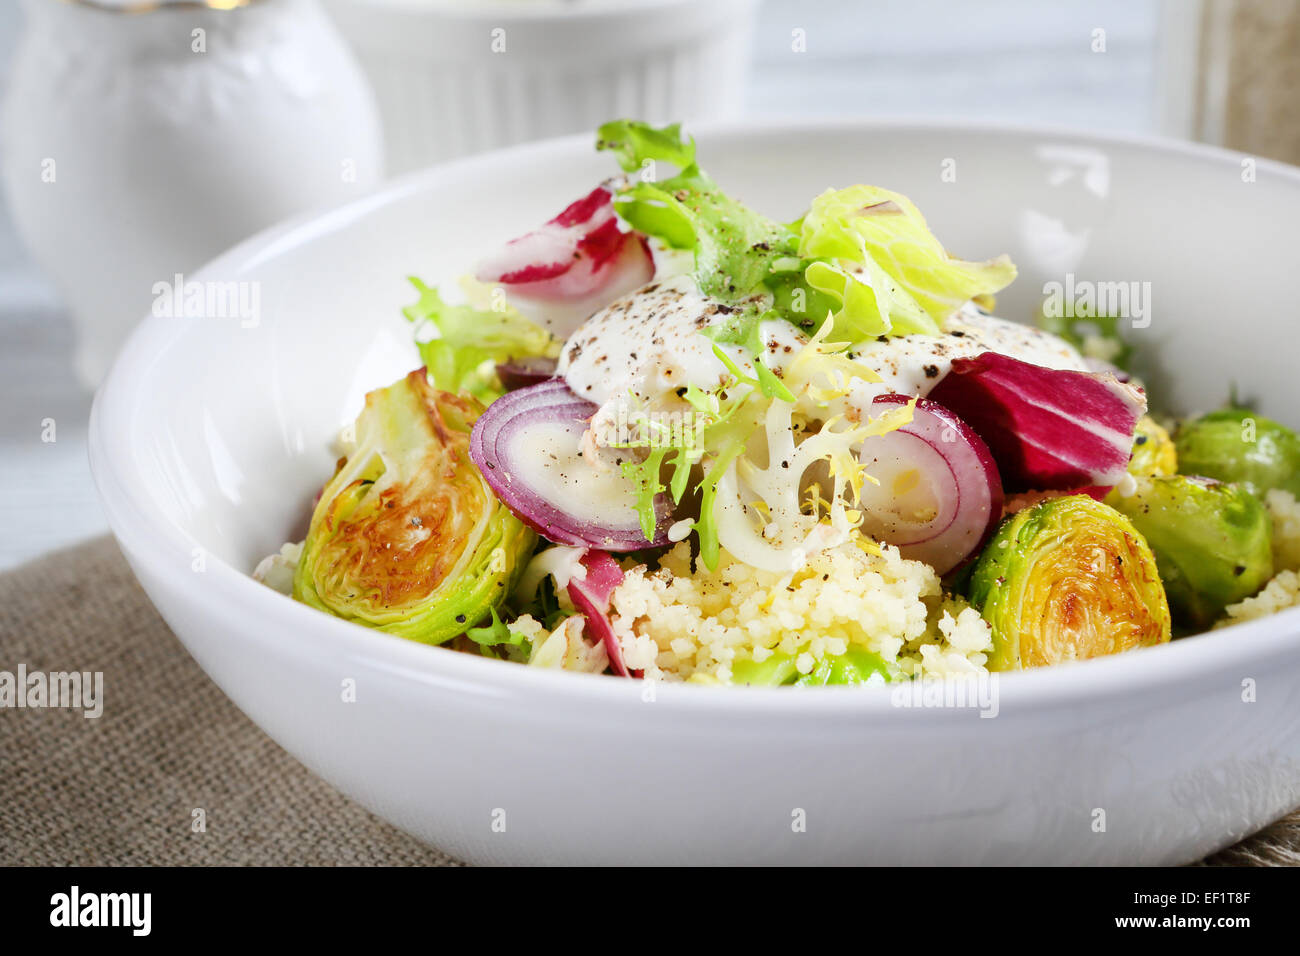 Healthy salad with couscous in a bowl, food - Stock Image